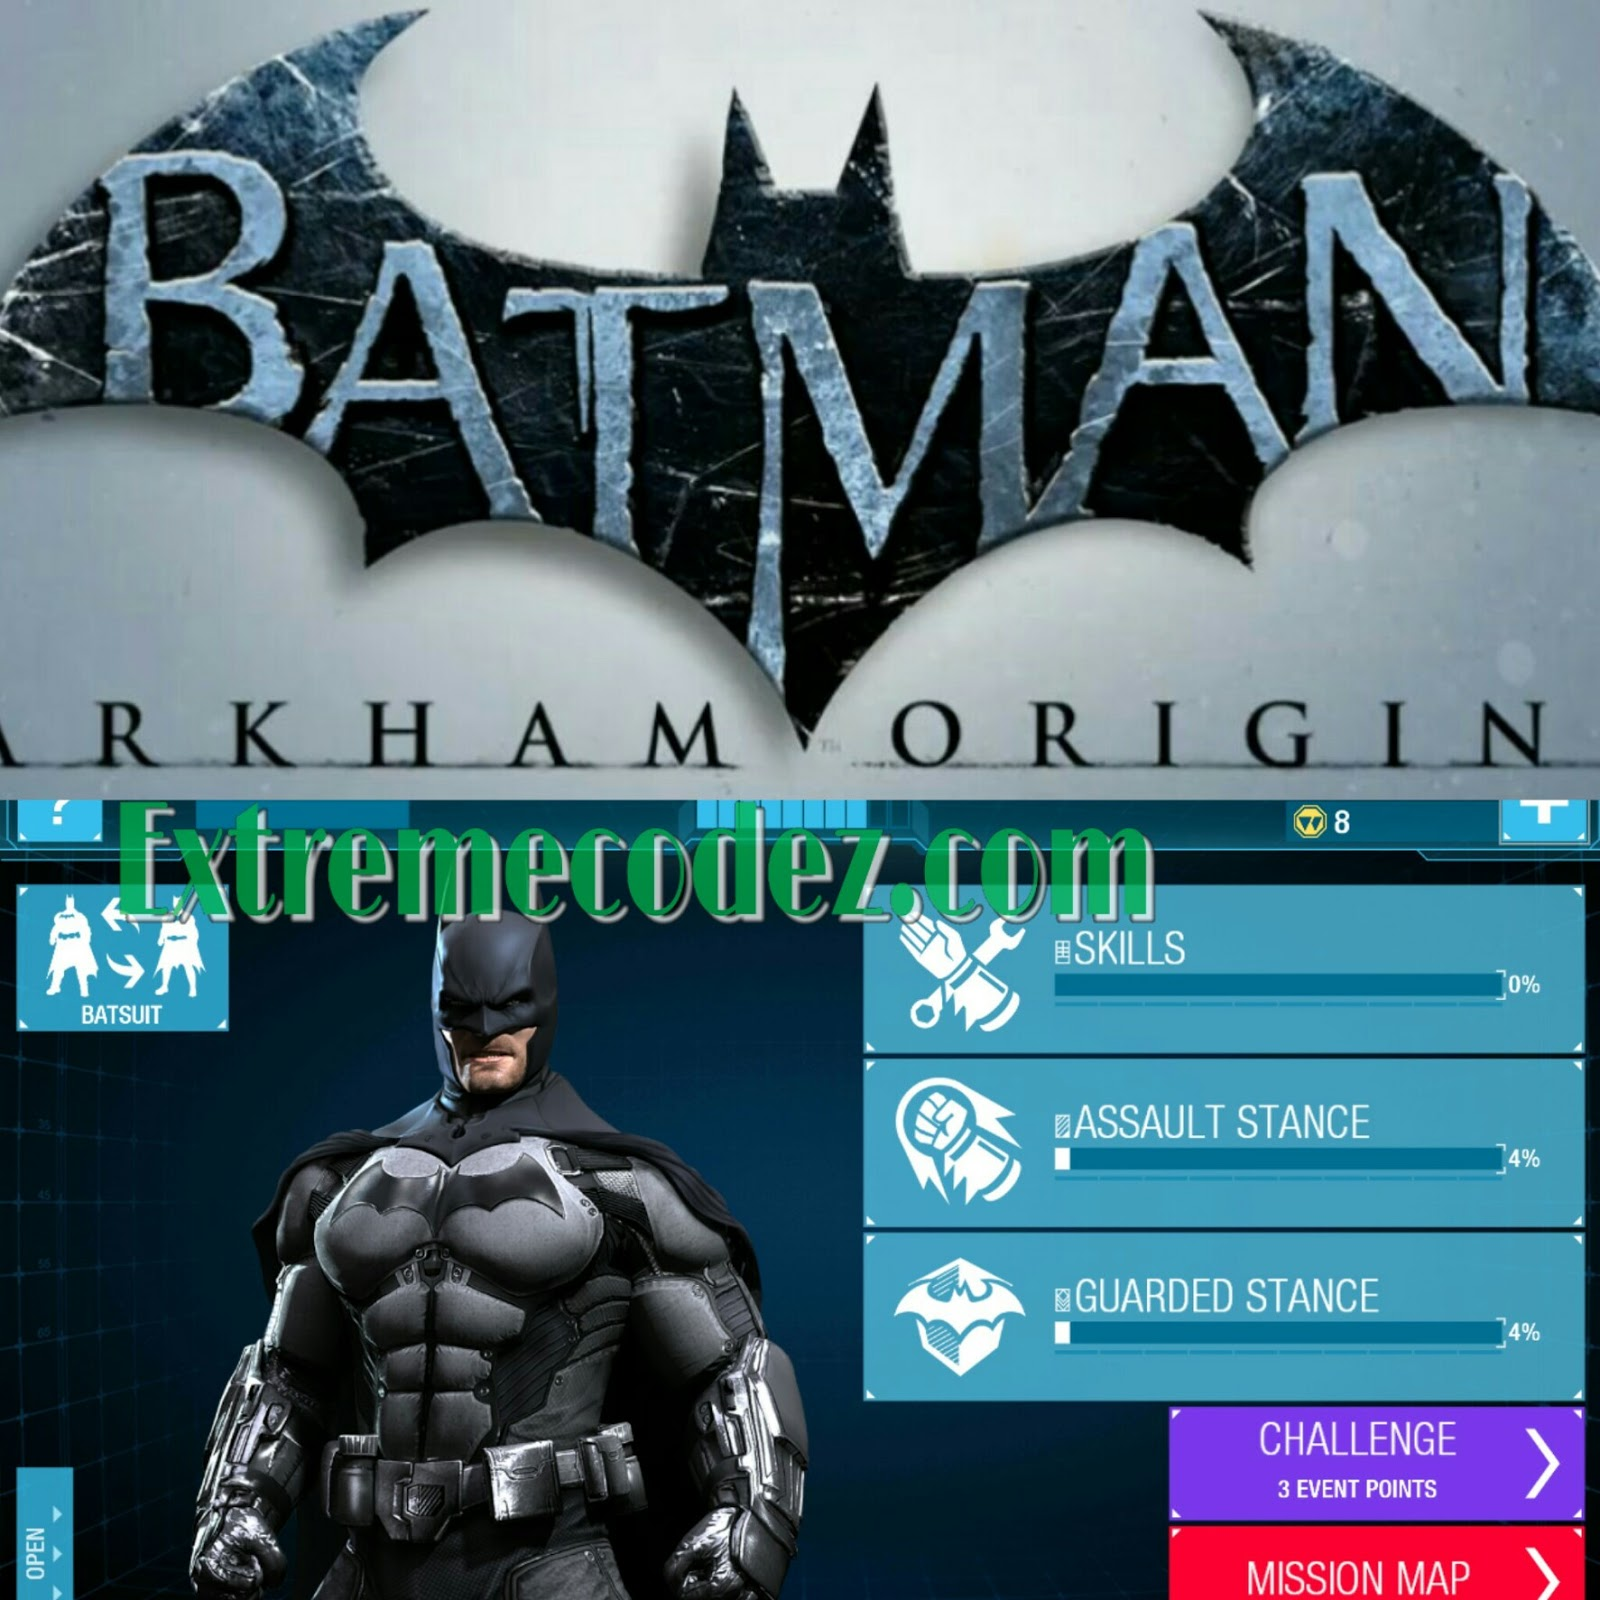 Batman Arkham origins android game mod APK | apk+data unlimited money offline game Abdul Wali. Loading... Unsubscribe from Abdul Wali? Cancel Unsubscribe. Working... Subscribe Subscribed ...